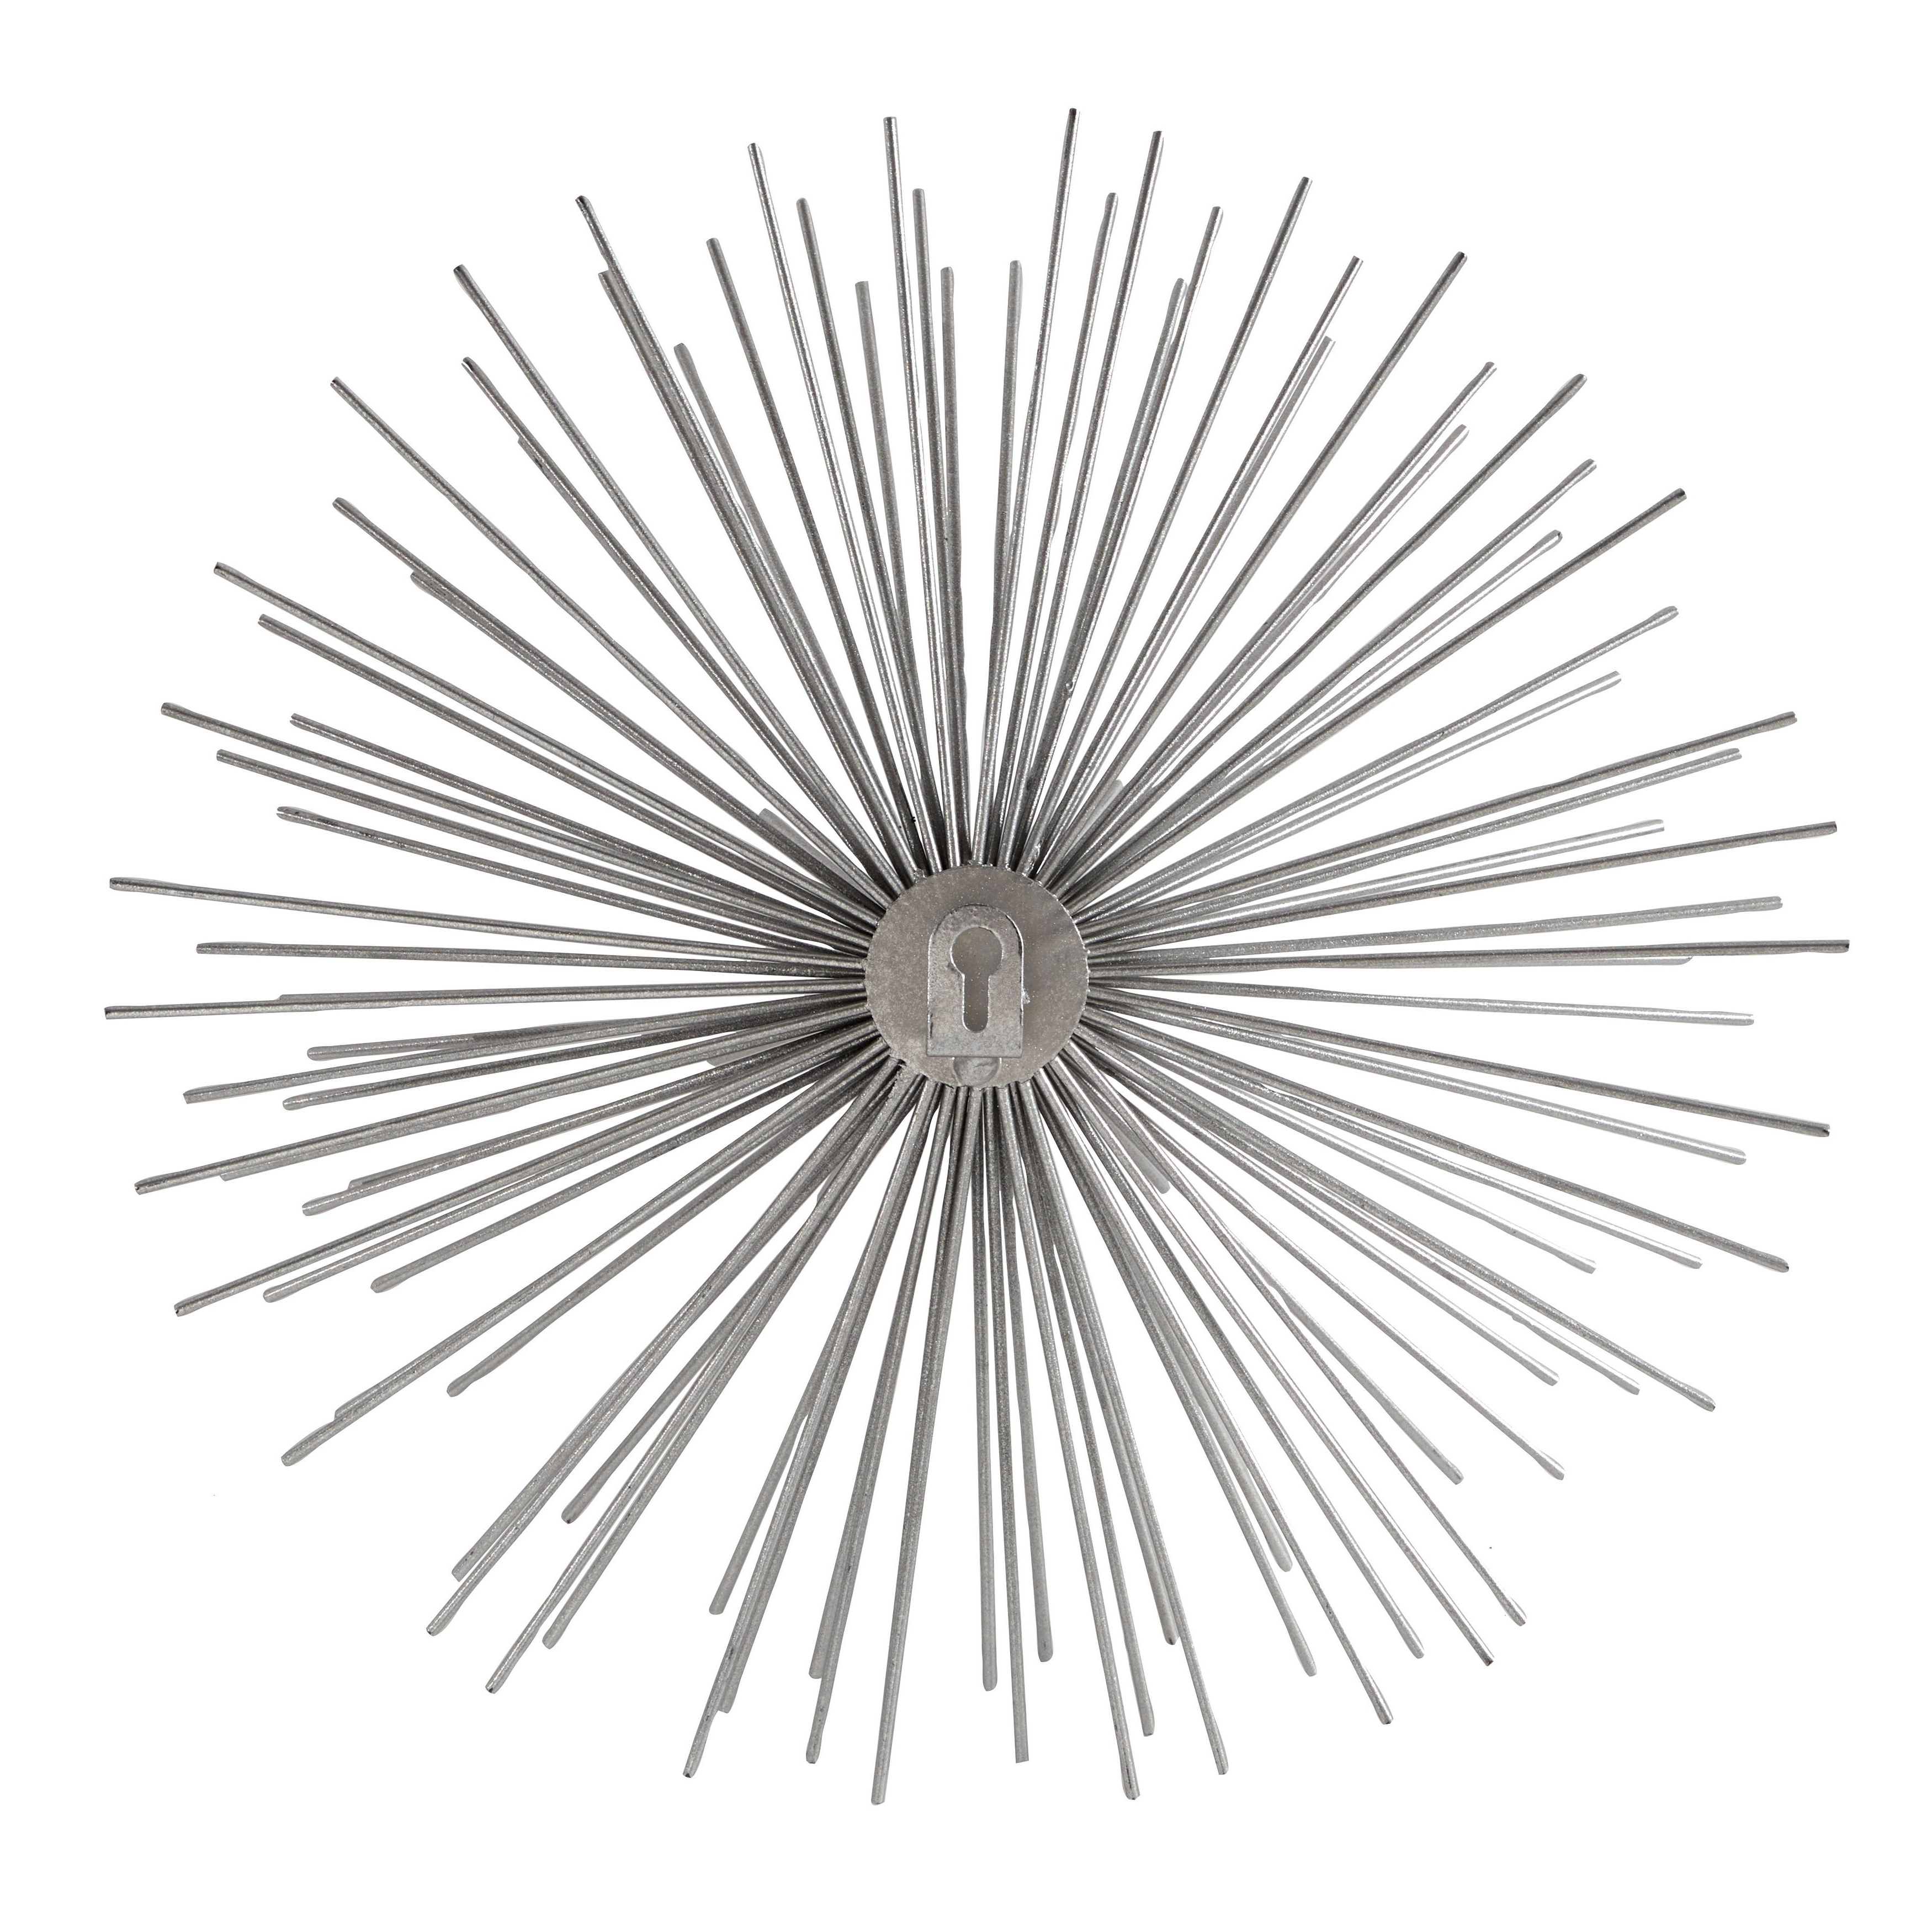 2020 Shop Contemporary Style 3D Round Silver Metal Starburst Wall Decor Inside Set Of 3 Contemporary 6, 9, And 11 Inch Gold Tin Starburst Sculptures (View 1 of 20)